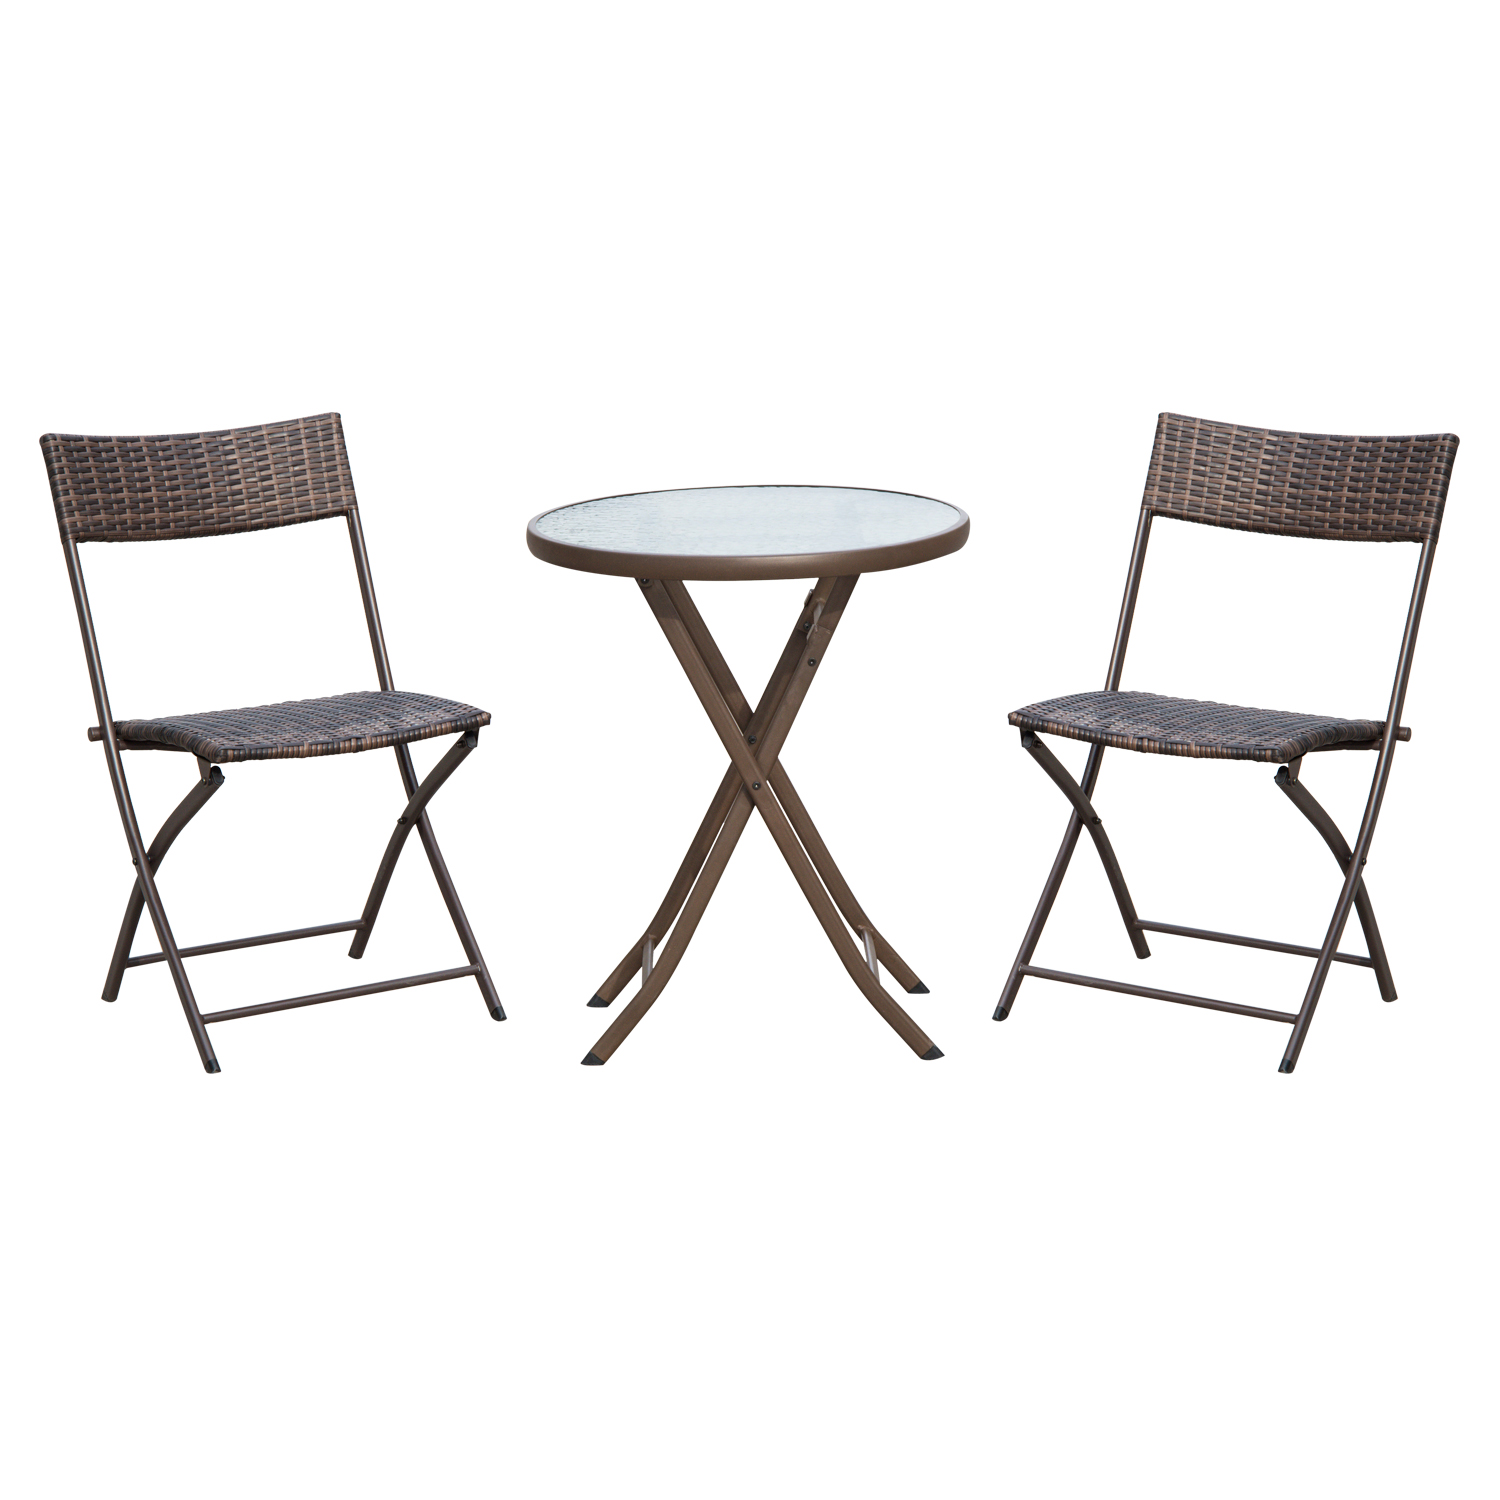 Image of £60.99 Outsunny 3pc Wicker Rattan Bistro Set-Brown / Set 2 Folding Chair Glass Topped Coffee Table Garden Patio Balcony Outdoor Furniture - Brown 3 Pieces Square Steel 863-029 5056029885994